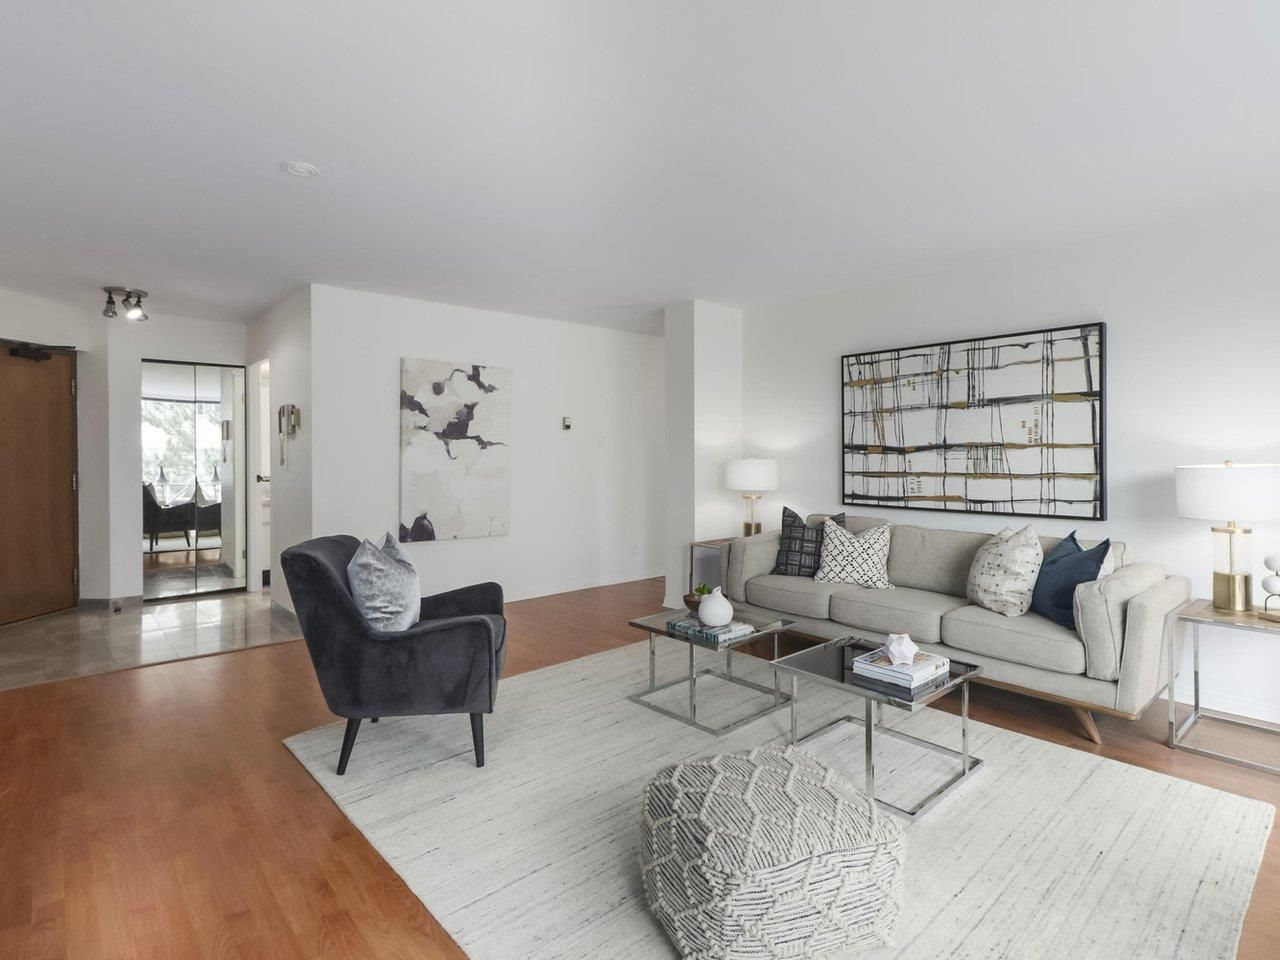 """Main Photo: 504 2108 W 38TH Avenue in Vancouver: Kerrisdale Condo for sale in """"The Wilshire"""" (Vancouver West)  : MLS®# R2400833"""